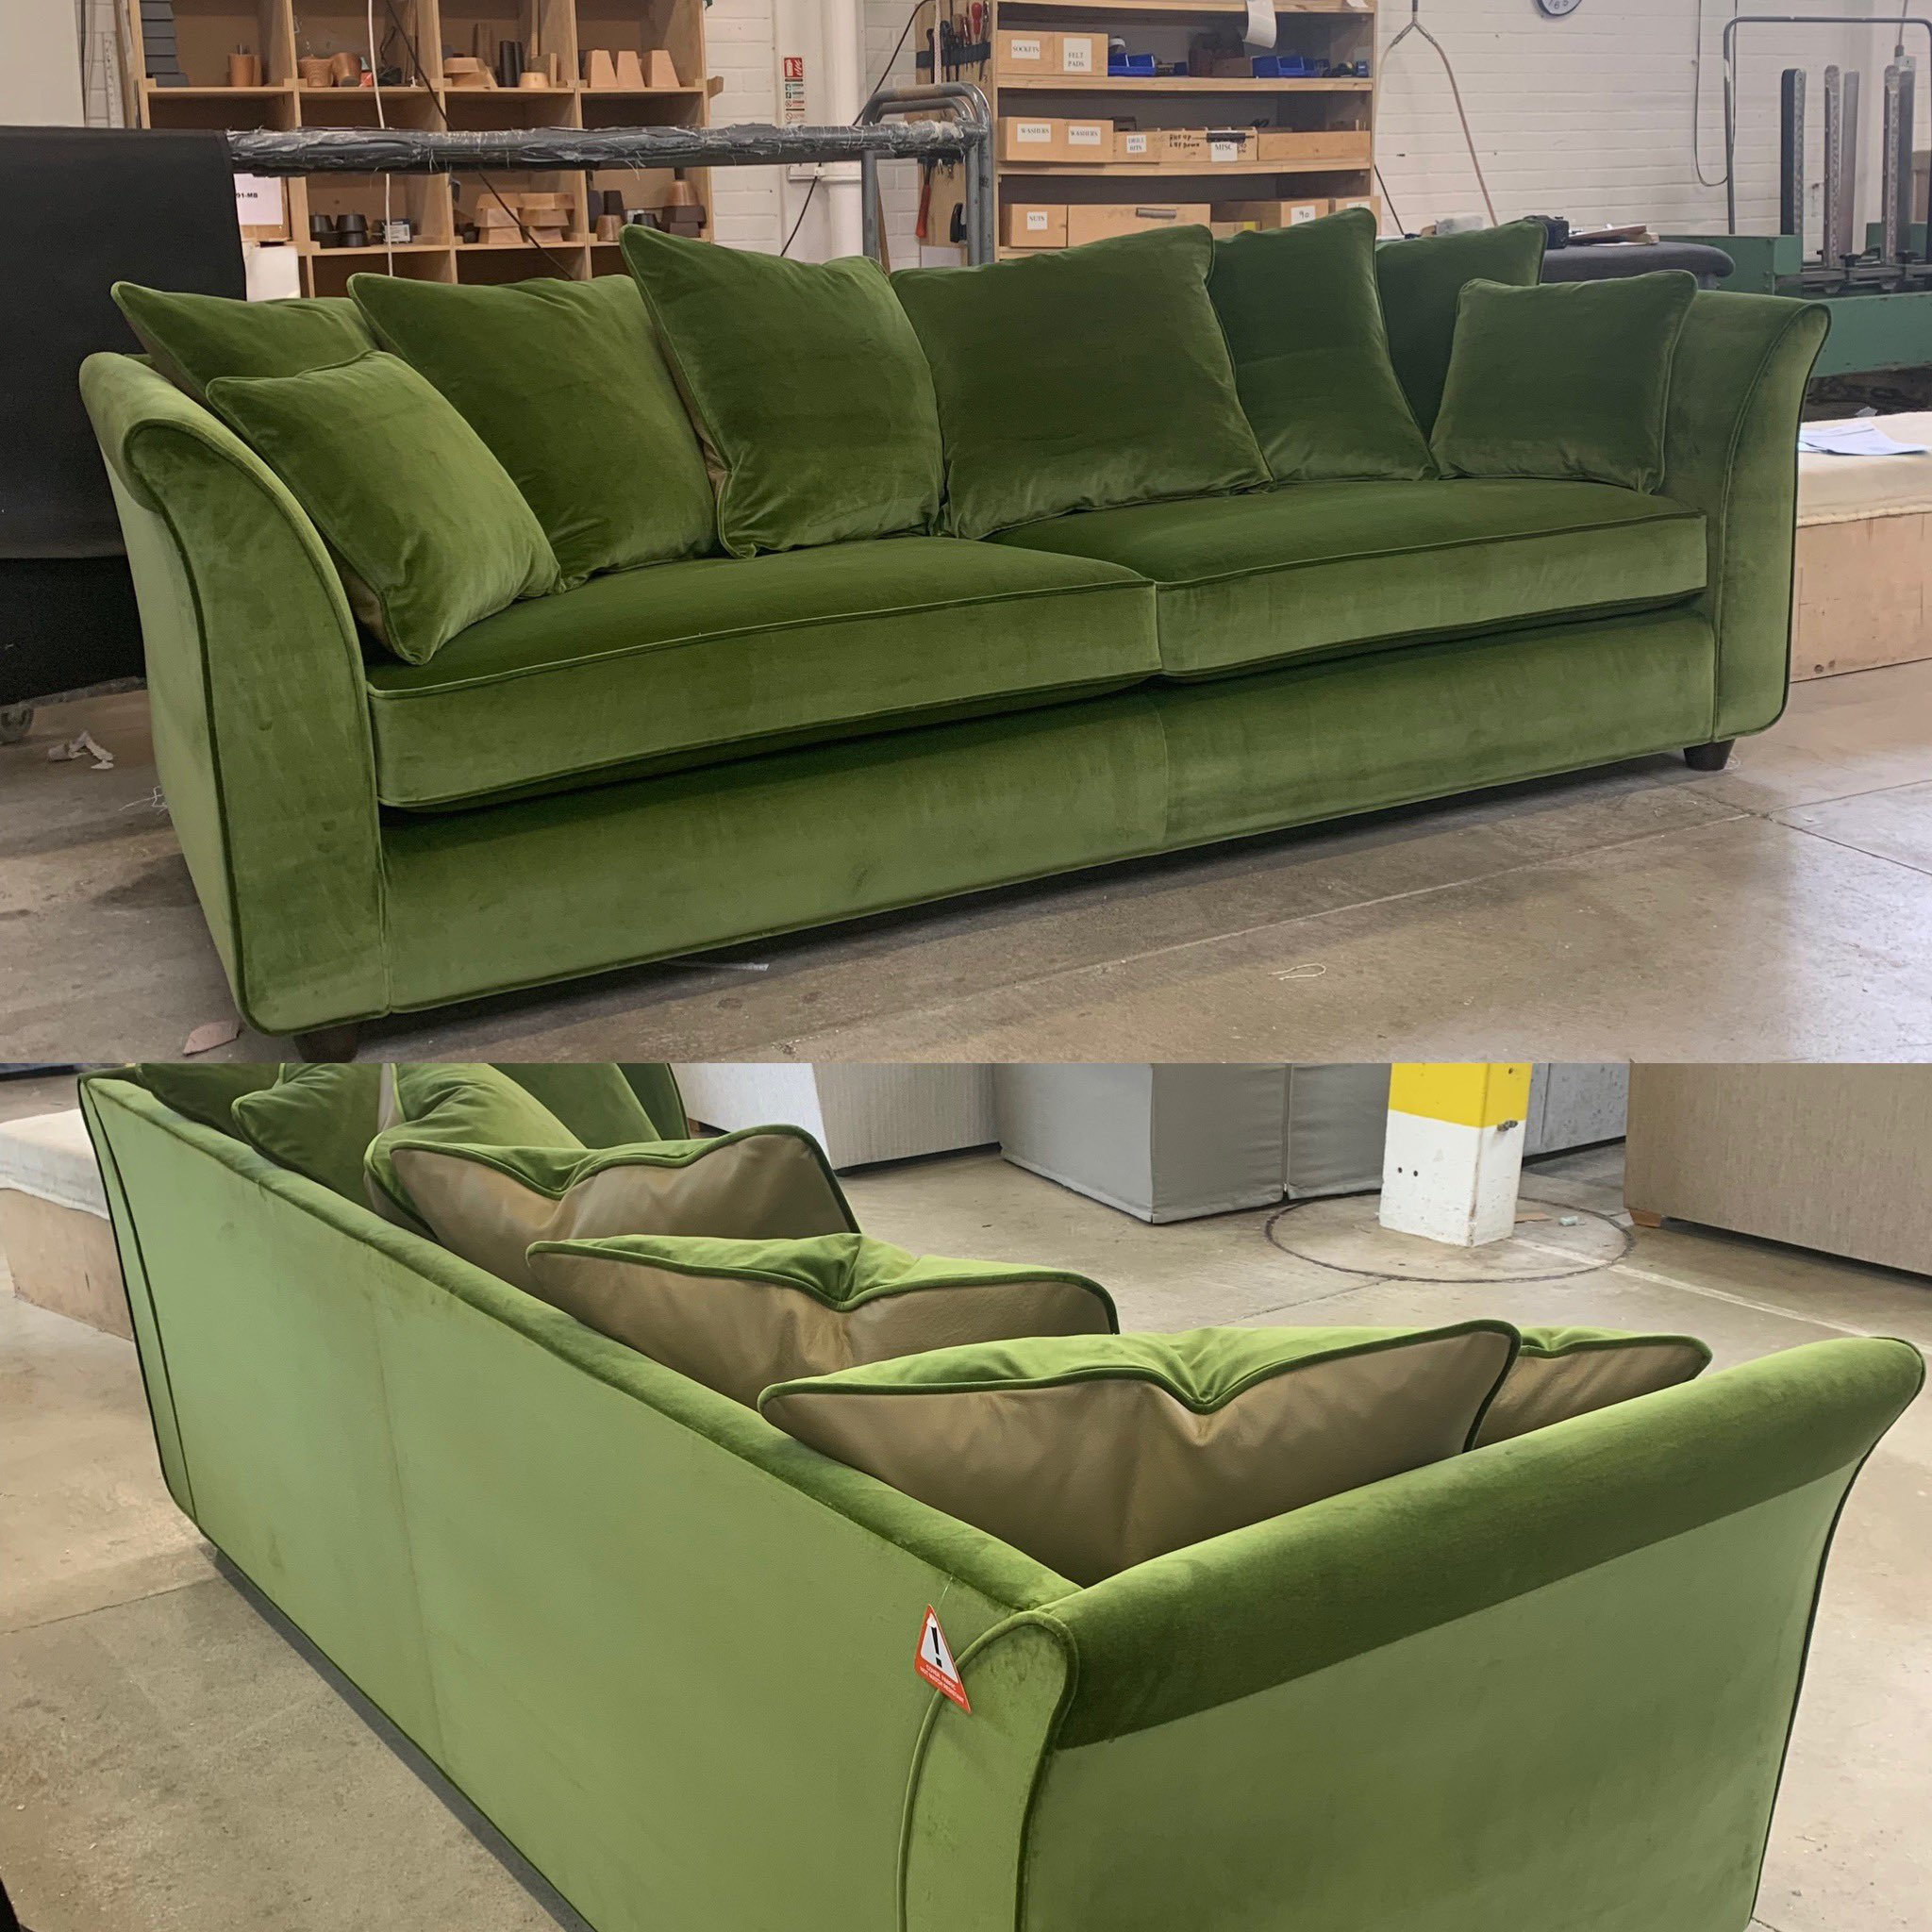 Wondrous The Hastings Sofa Company On Twitter Stunning Made To Andrewgaddart Wooden Chair Designs For Living Room Andrewgaddartcom